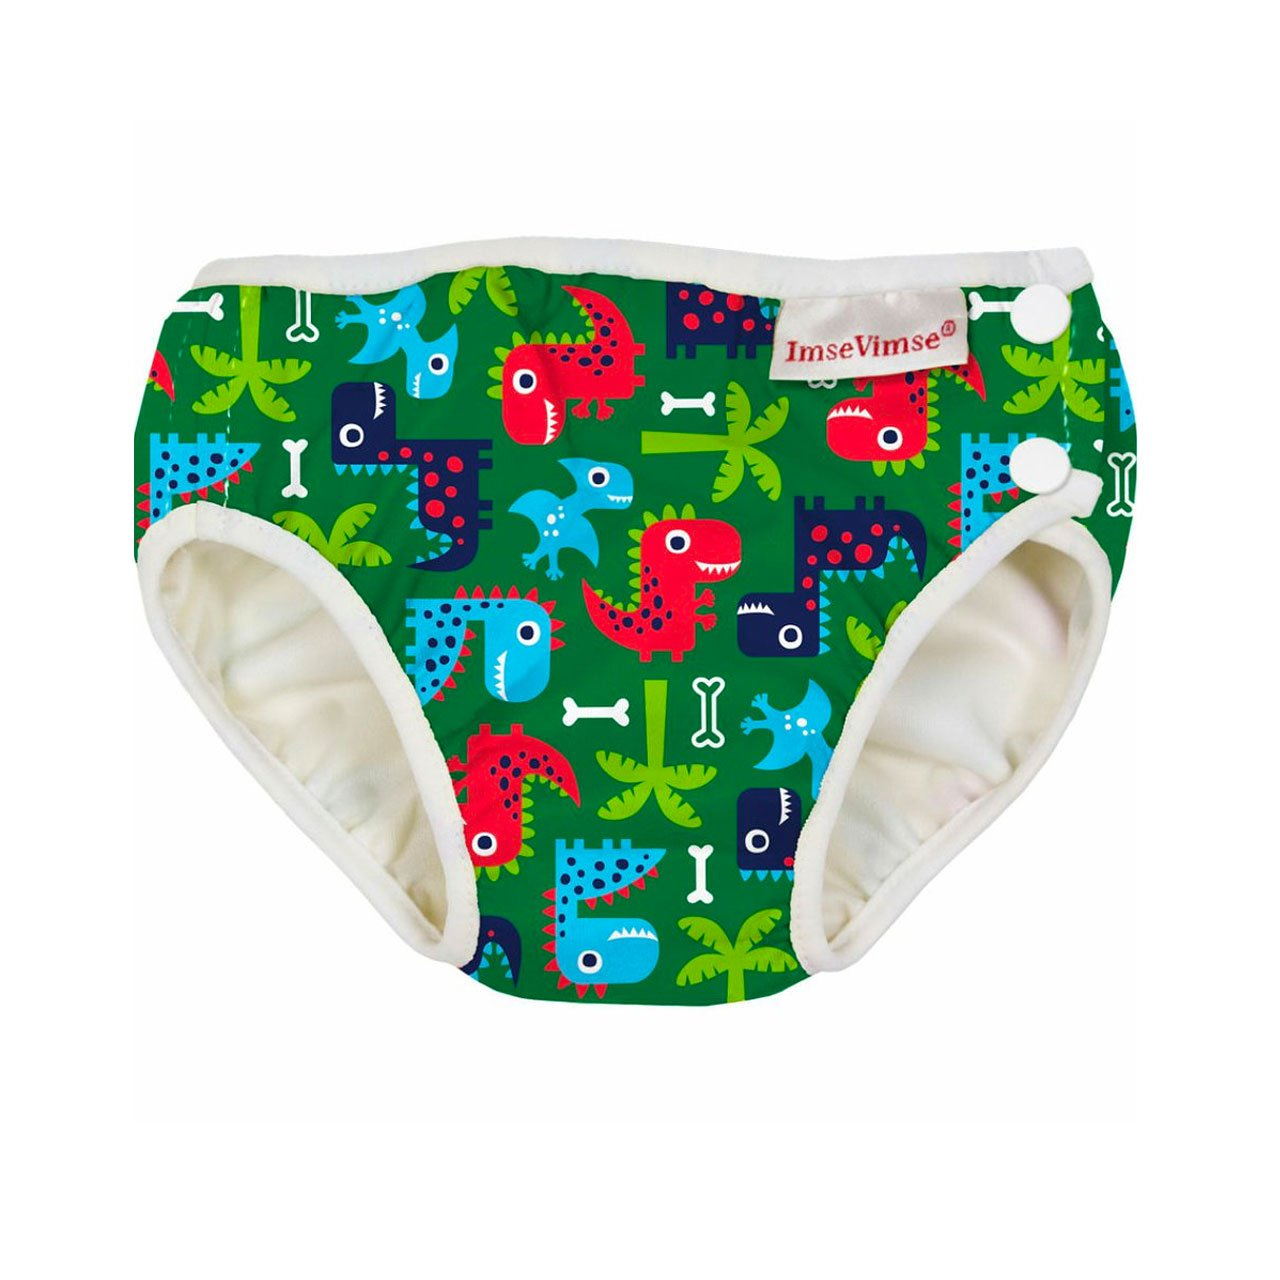 Imse Vimse Reusable Swim Nappies Imse Vimse Nappies Green Dino / Newborn (4-6kg) at Little Earth Nest Eco Shop